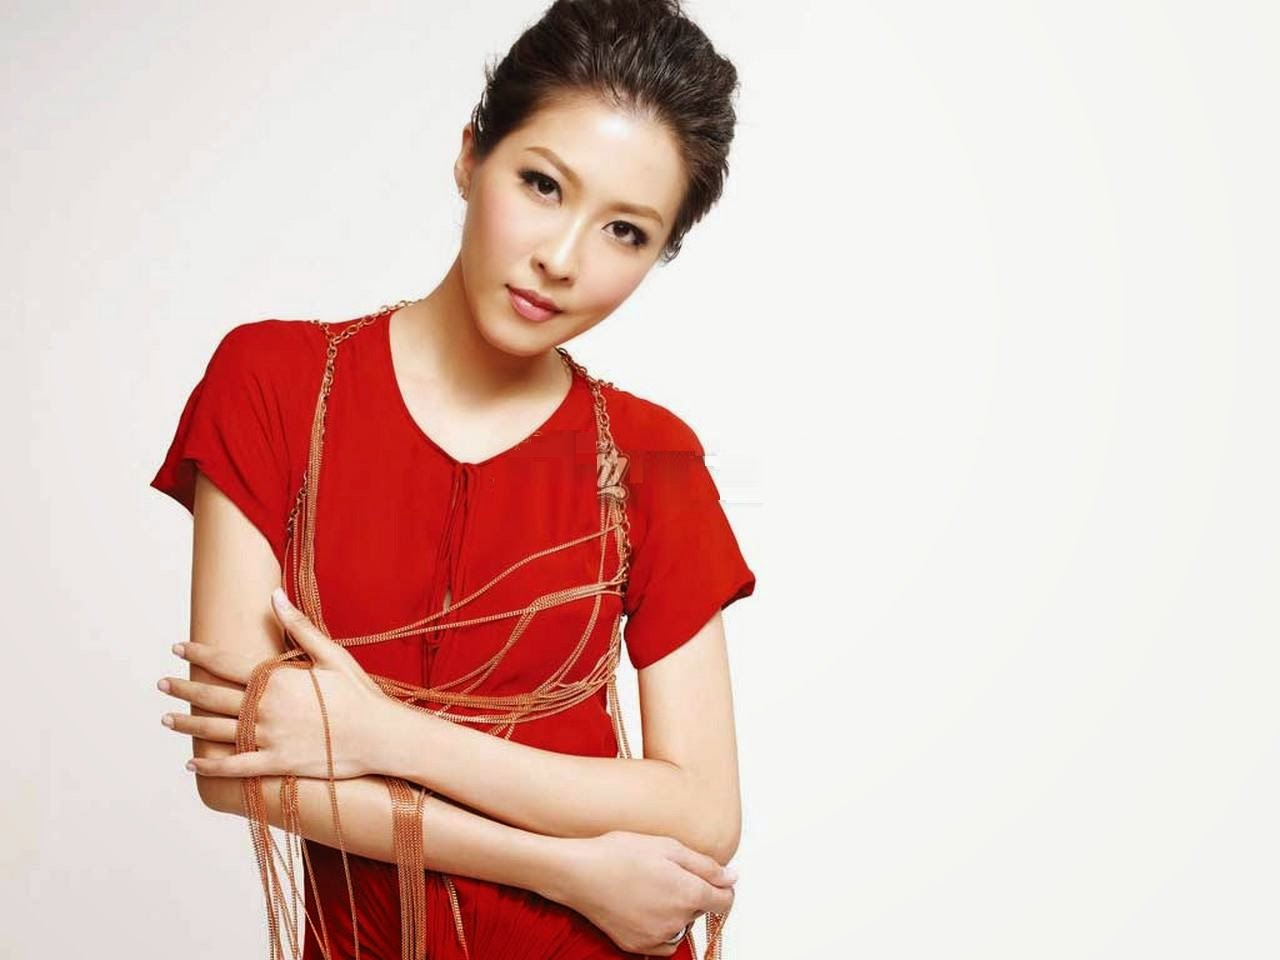 Sharon Chan Hd Wallpapers Free Download